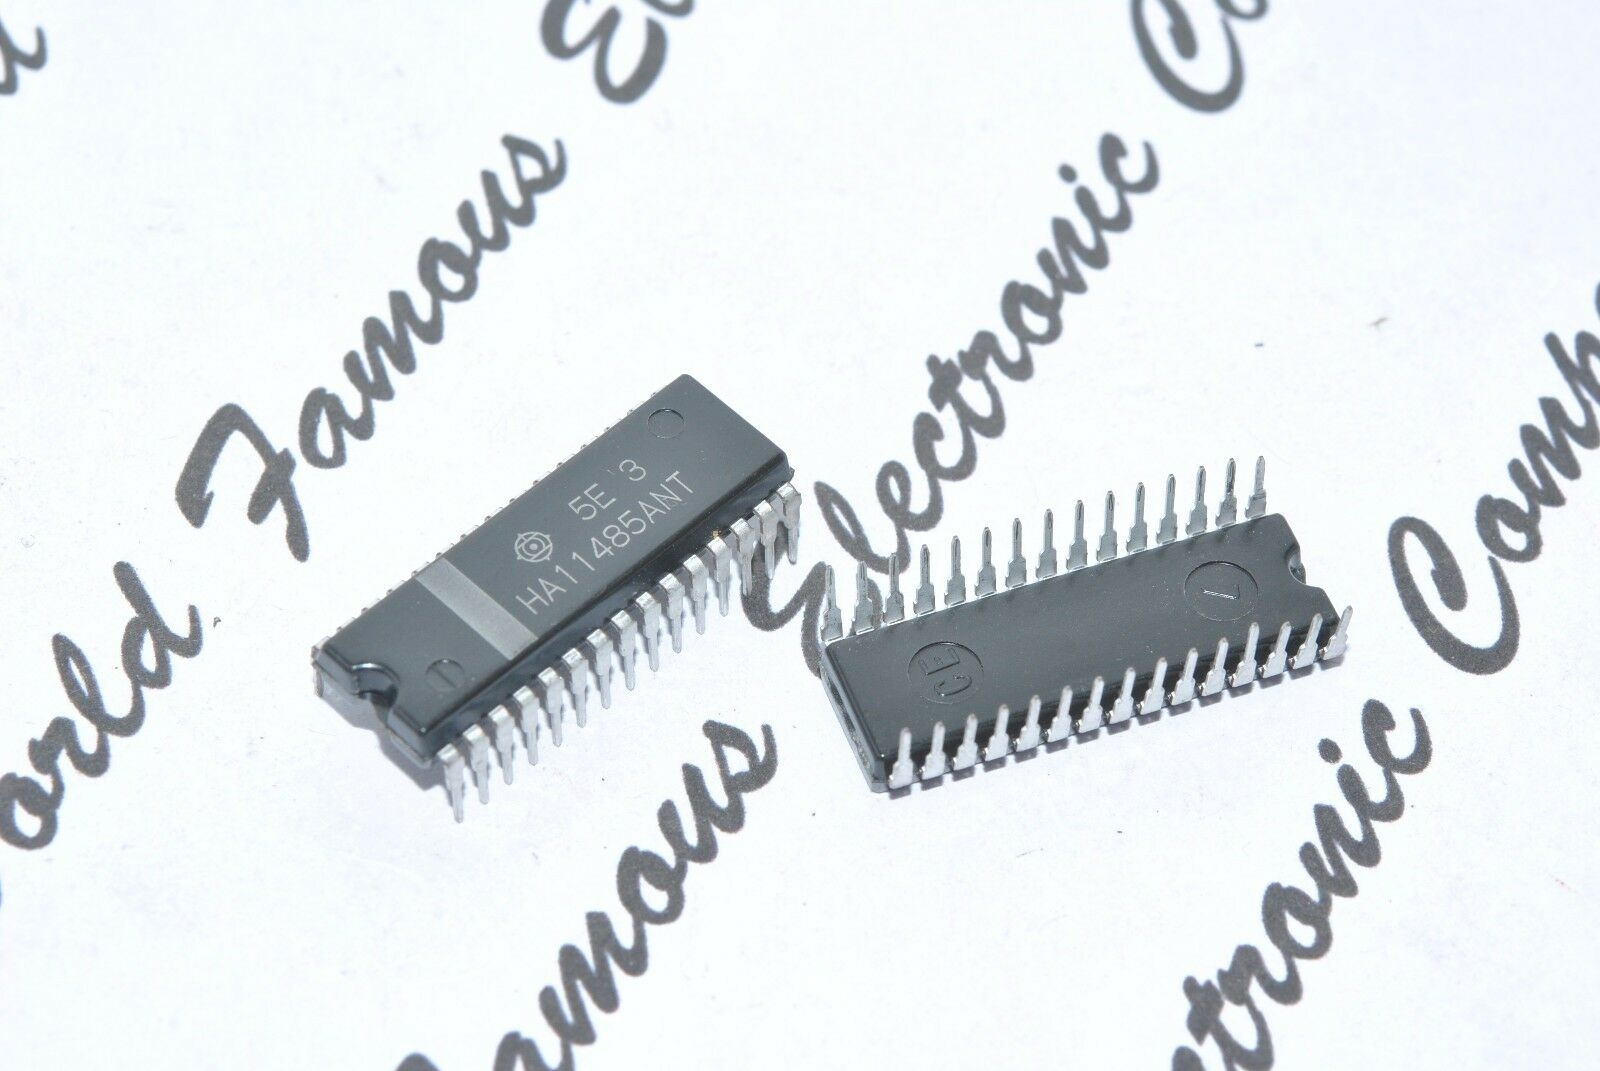 1pcs Hitachi Ha11485ant Integrated Circuit Ic Genuine Nos Basic Information For Beginners In 1 Of 2 See More